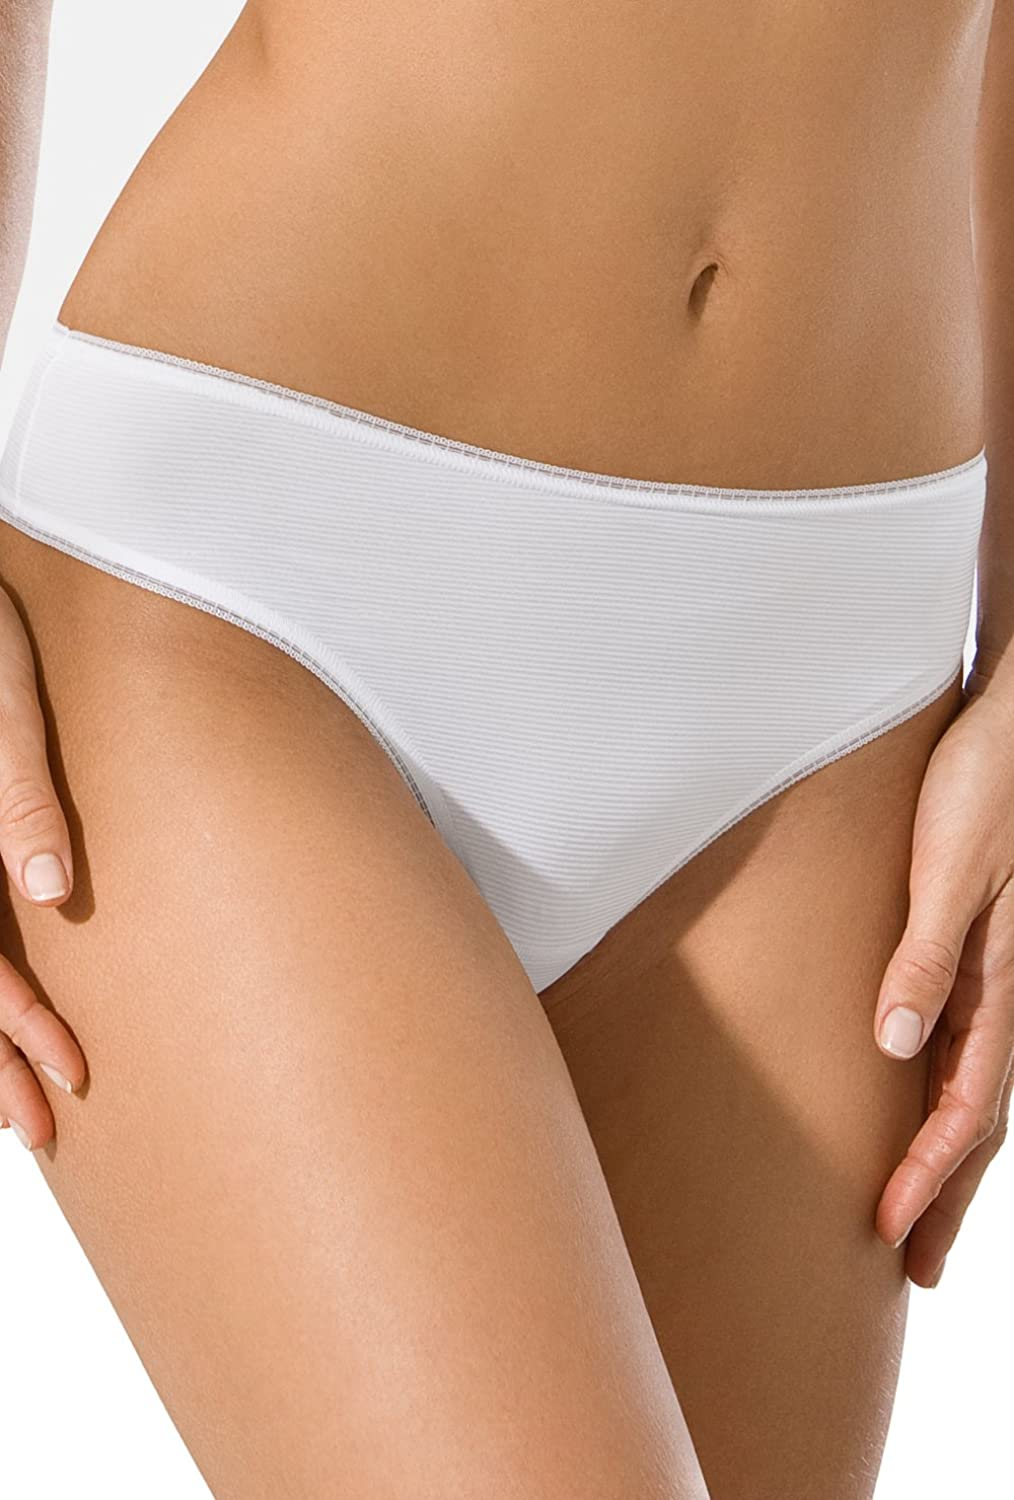 Speidel String-Tanga magic look, 5er-Pack 3611